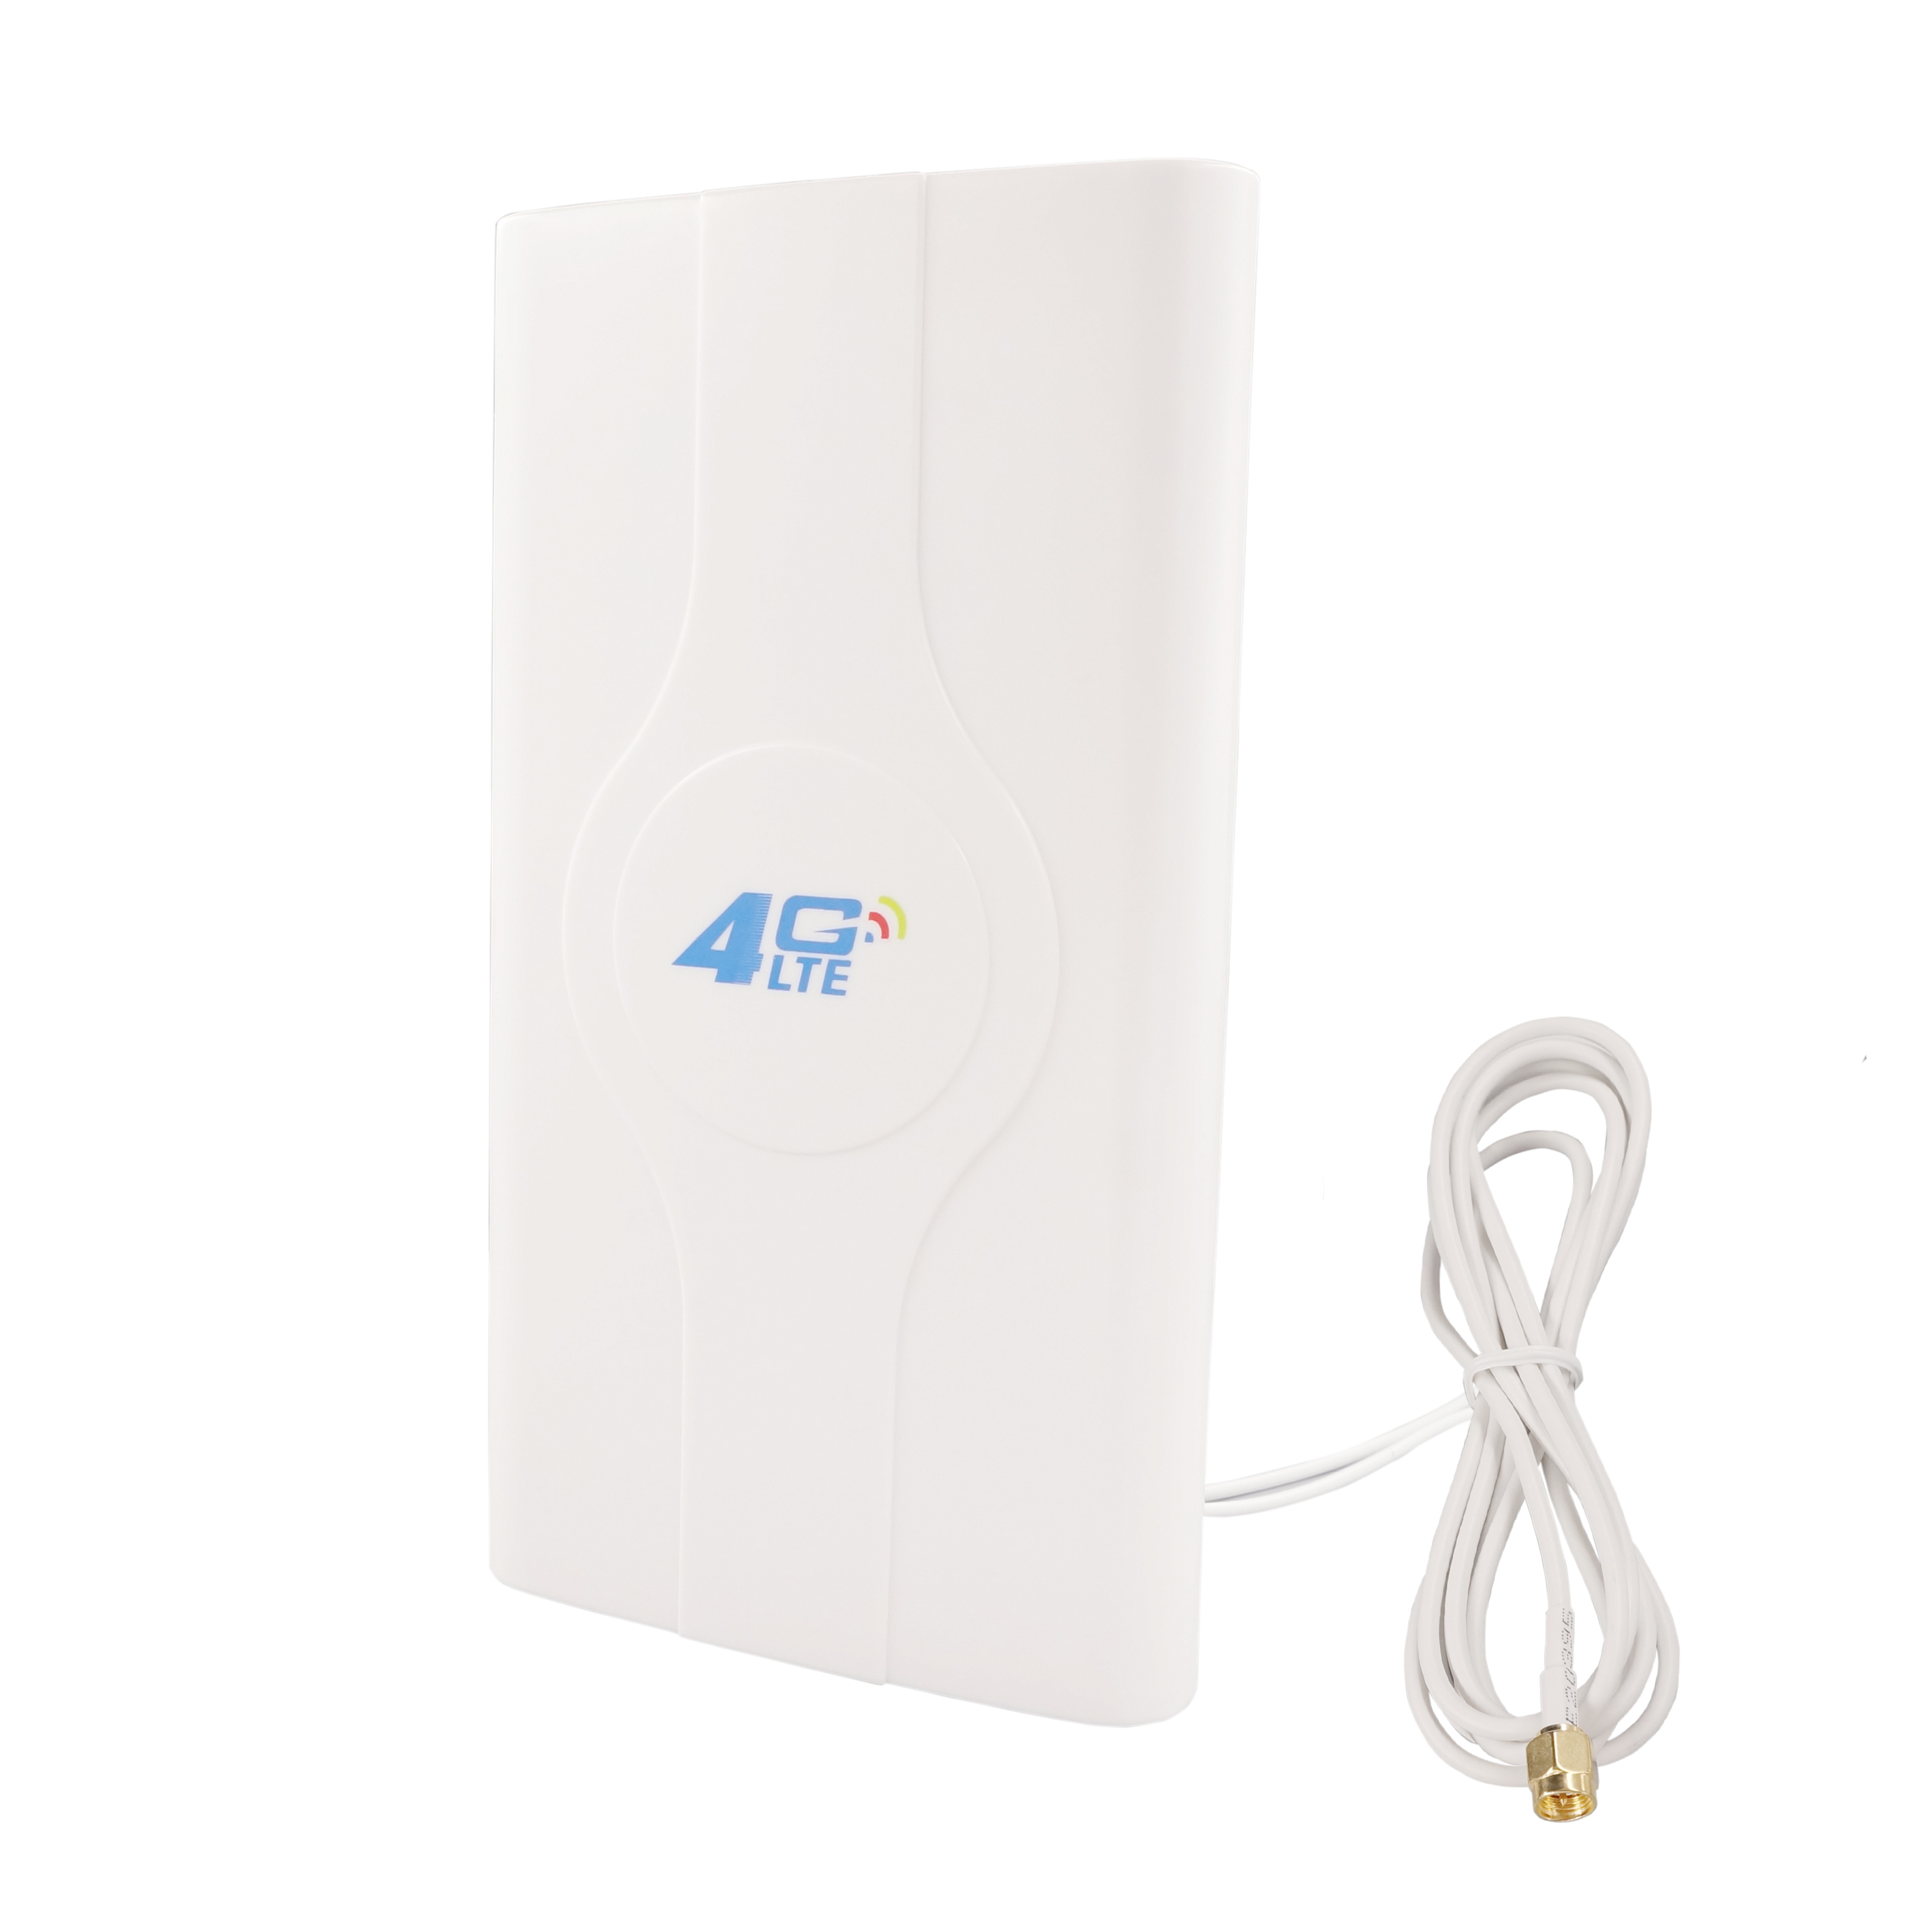 ZBT LF-ANT4G01 4G LTE MIMO Desktop Antennas Signal-Amplifier Expand Signal Booster SMA CRC9 TS-9 Connector Adapter Converter 3